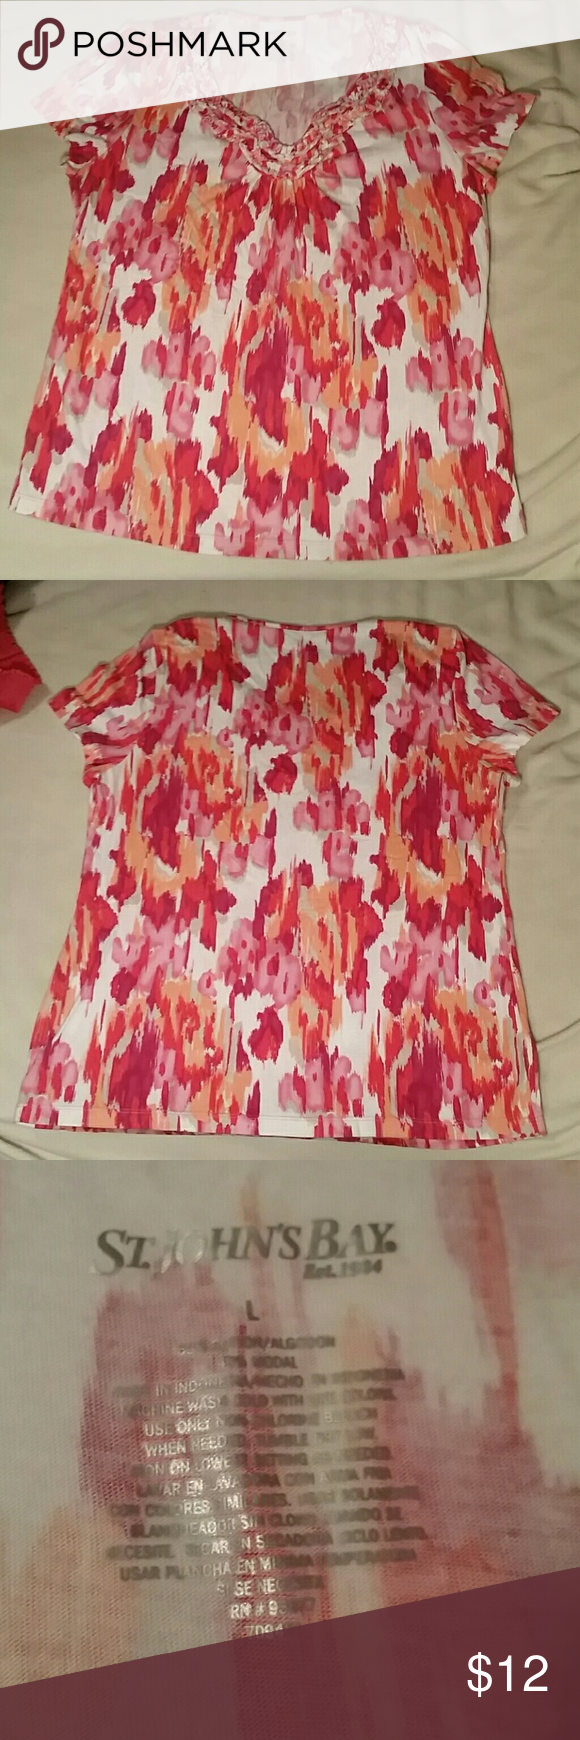 St Johns Bay Multicolored tshirt Very cute shirt St. Johns Bay size L. Good condition. Feel free to make offers. My closet has items of all sizes so look around! St. John's Bay Tops Blouses